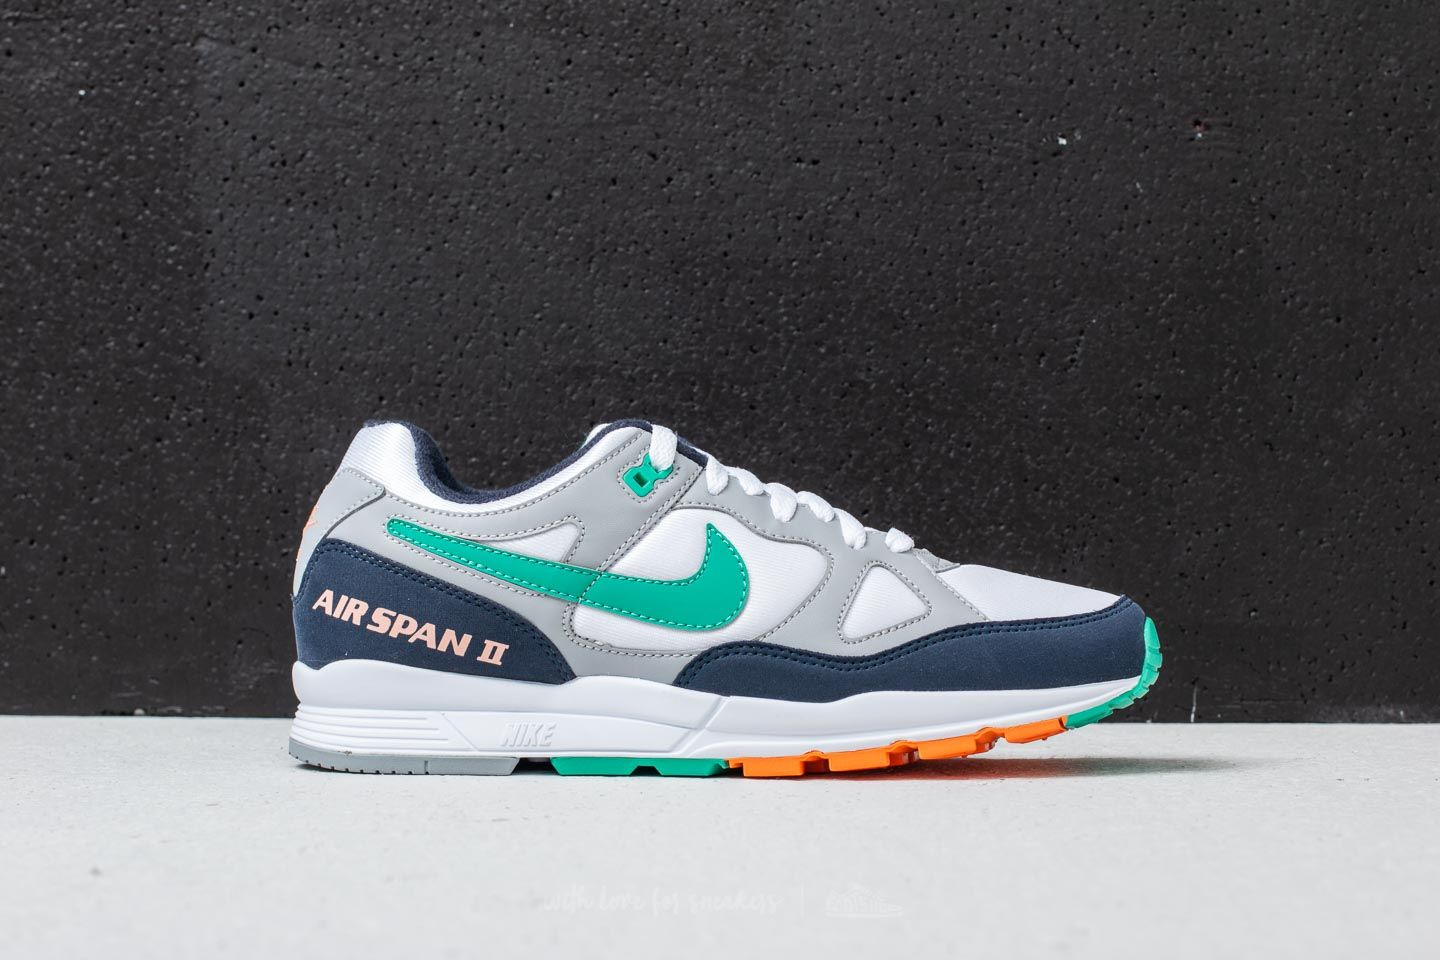 new concept 024c6 235b7 Nike Air Span II Wolf Grey Kinetic Green at a great price £86 buy